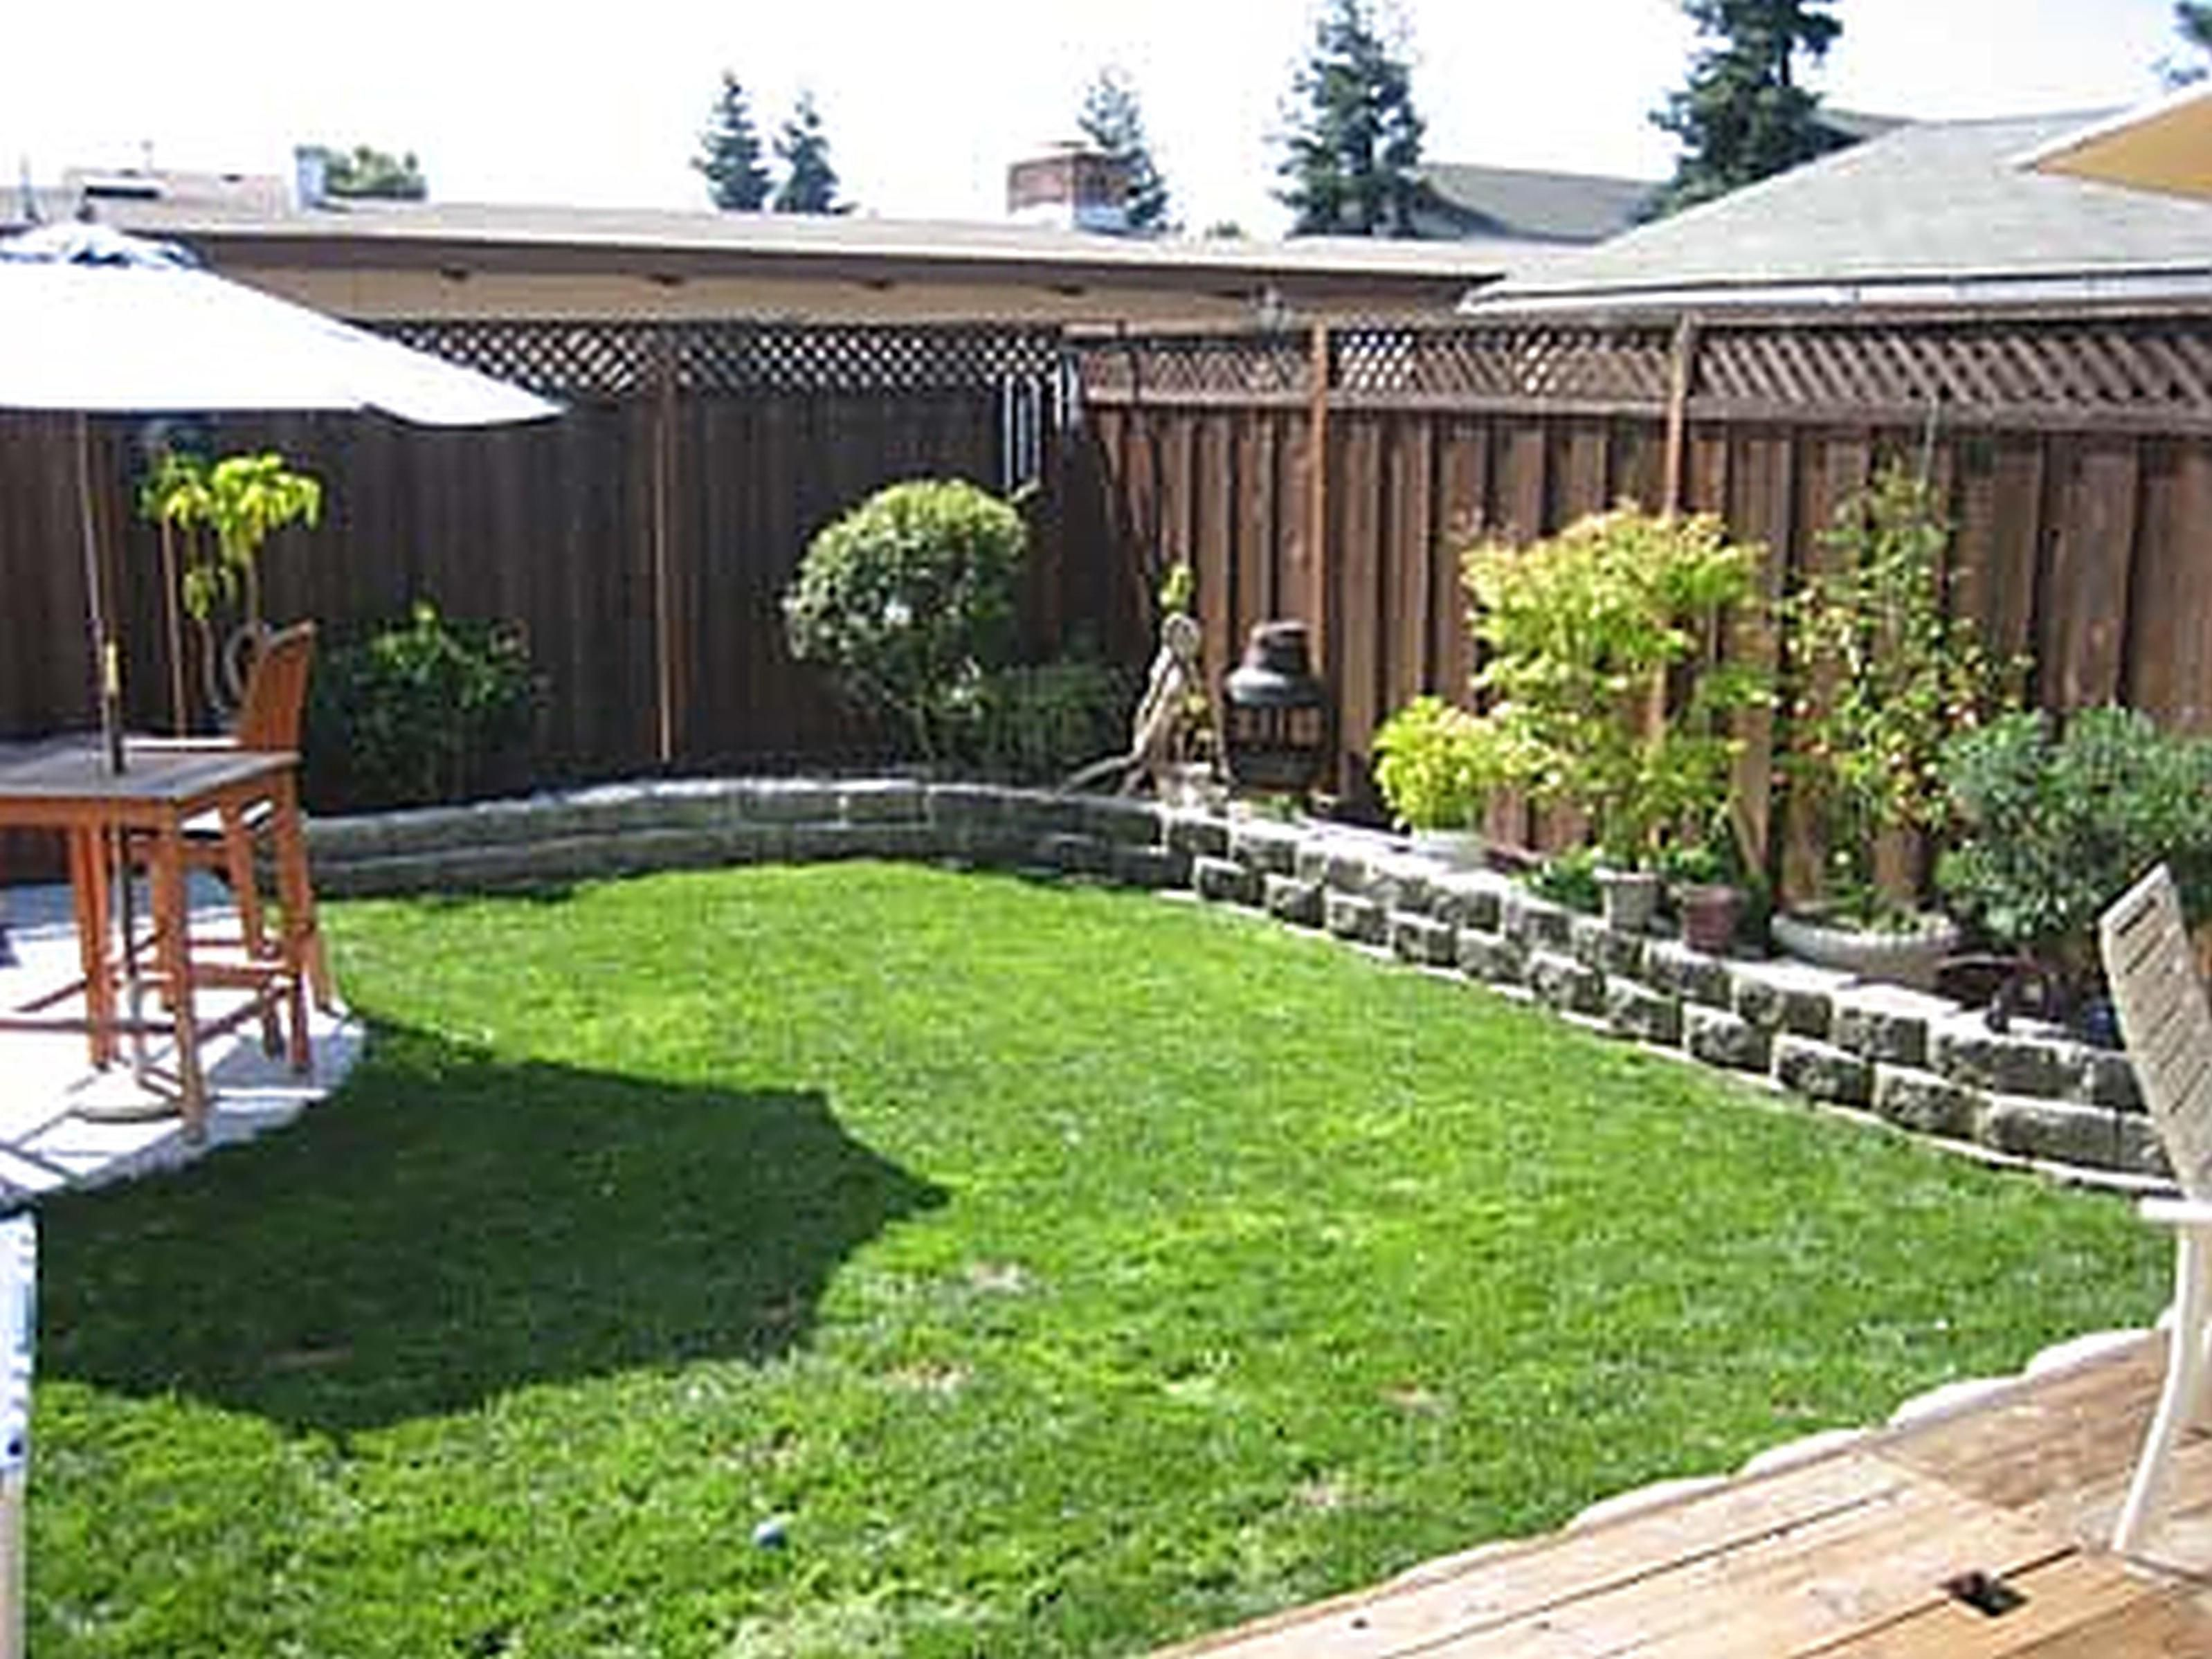 44 Stunning Low Budget Back Yard Landscaping Ideas Let S Diy Home Easy Backyard Landscaping Small Backyard Gardens Small Yard Landscaping